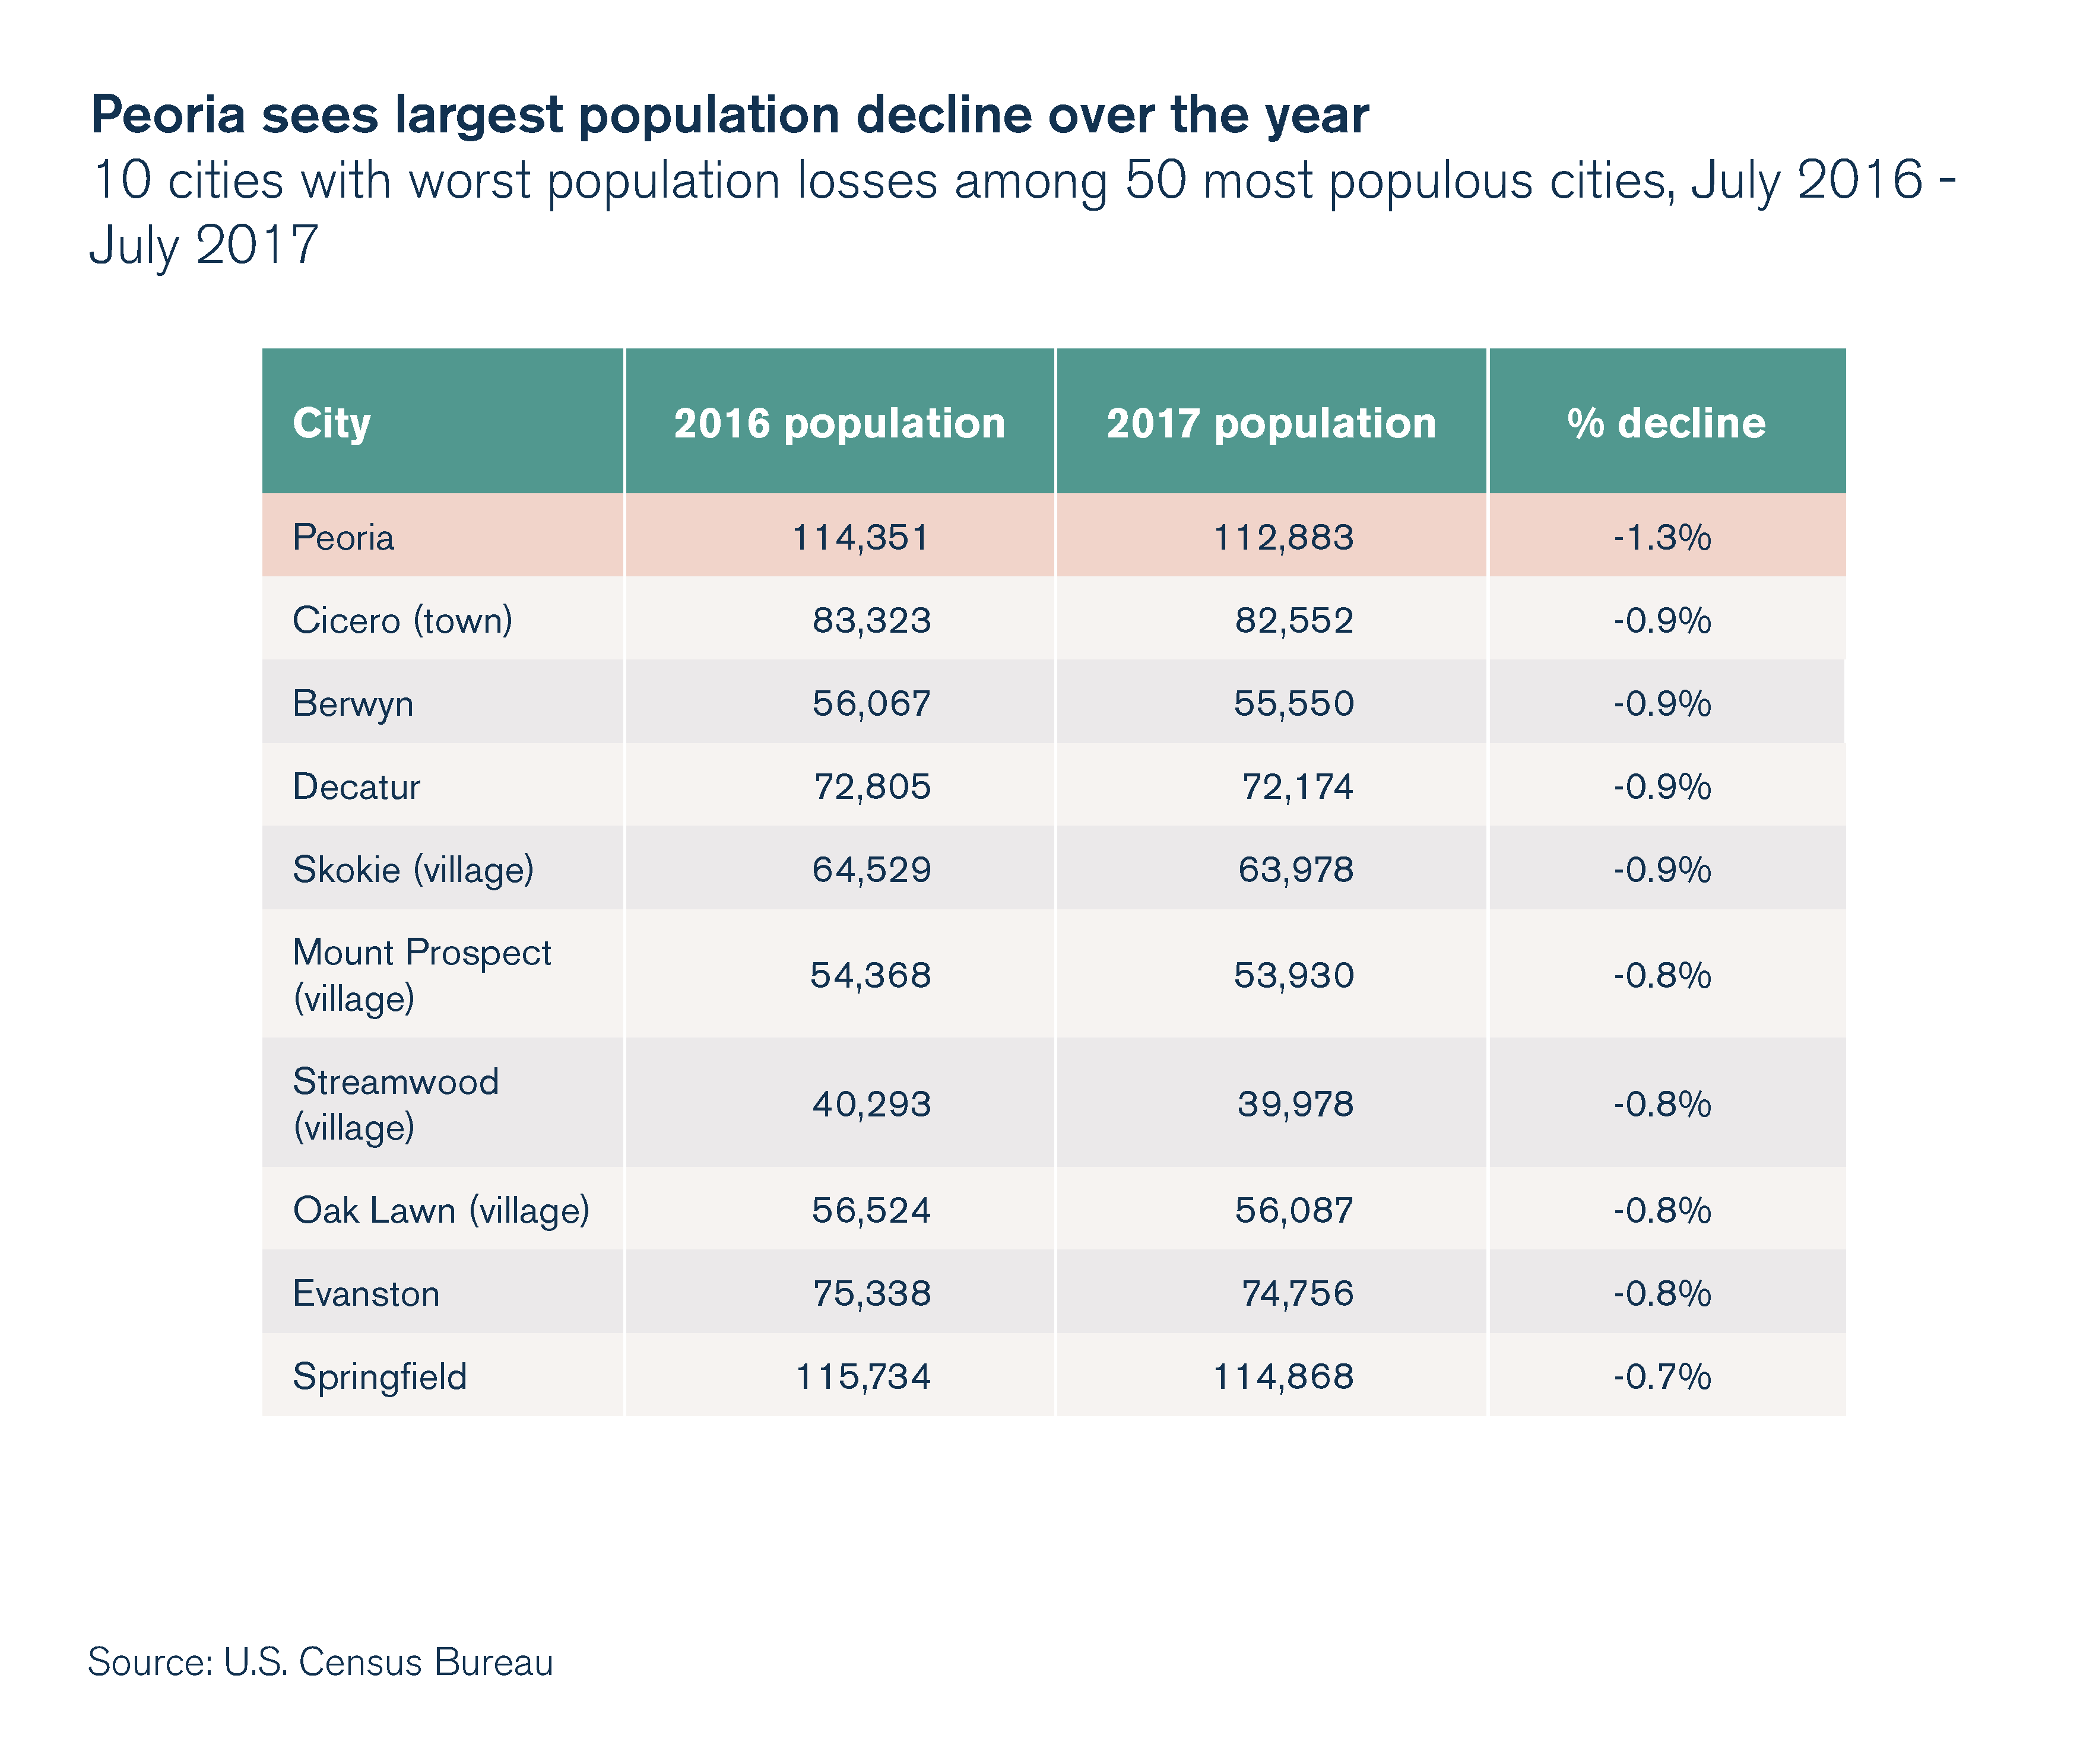 Peoria sees largest population decline over the year